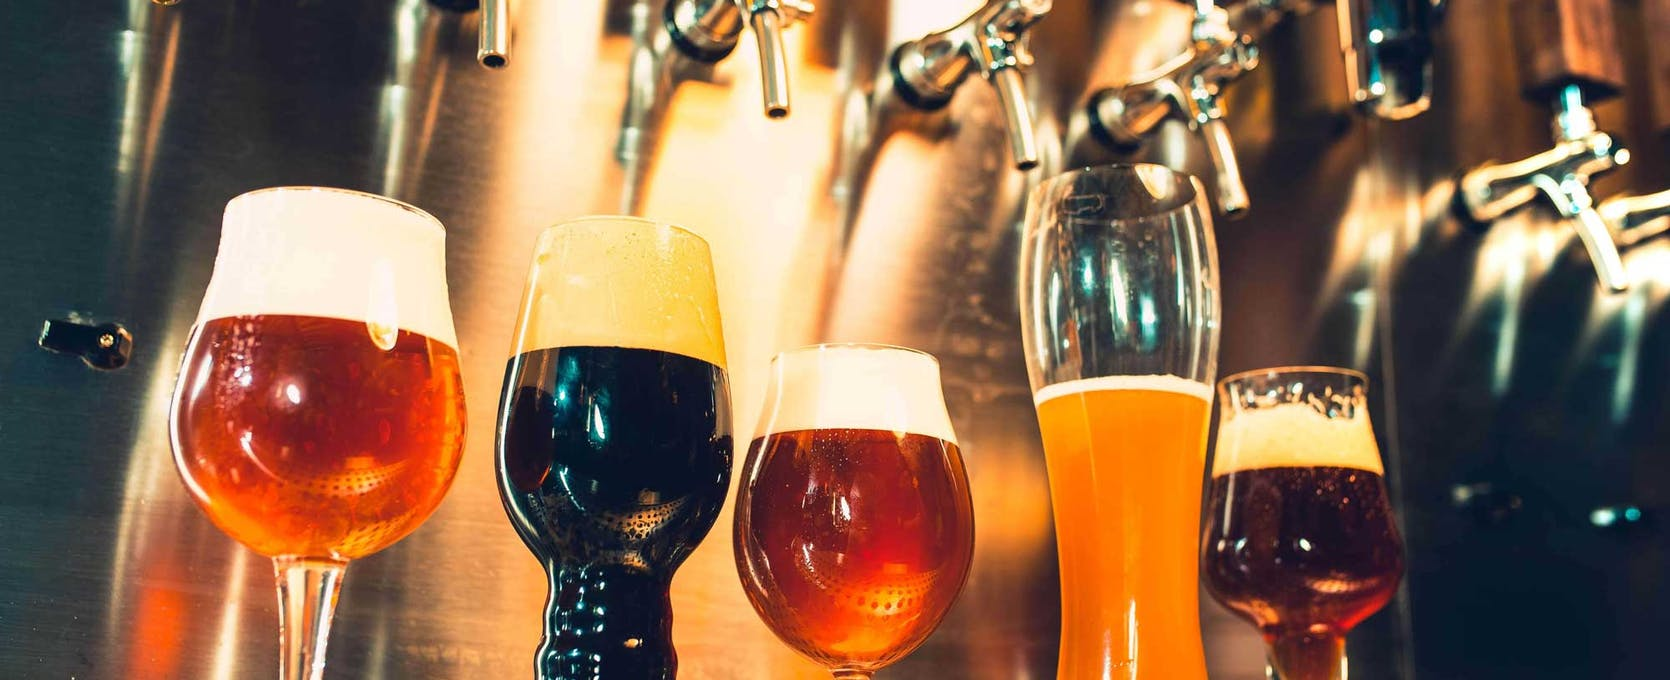 Craft brewery displays a sampling of beer on tap